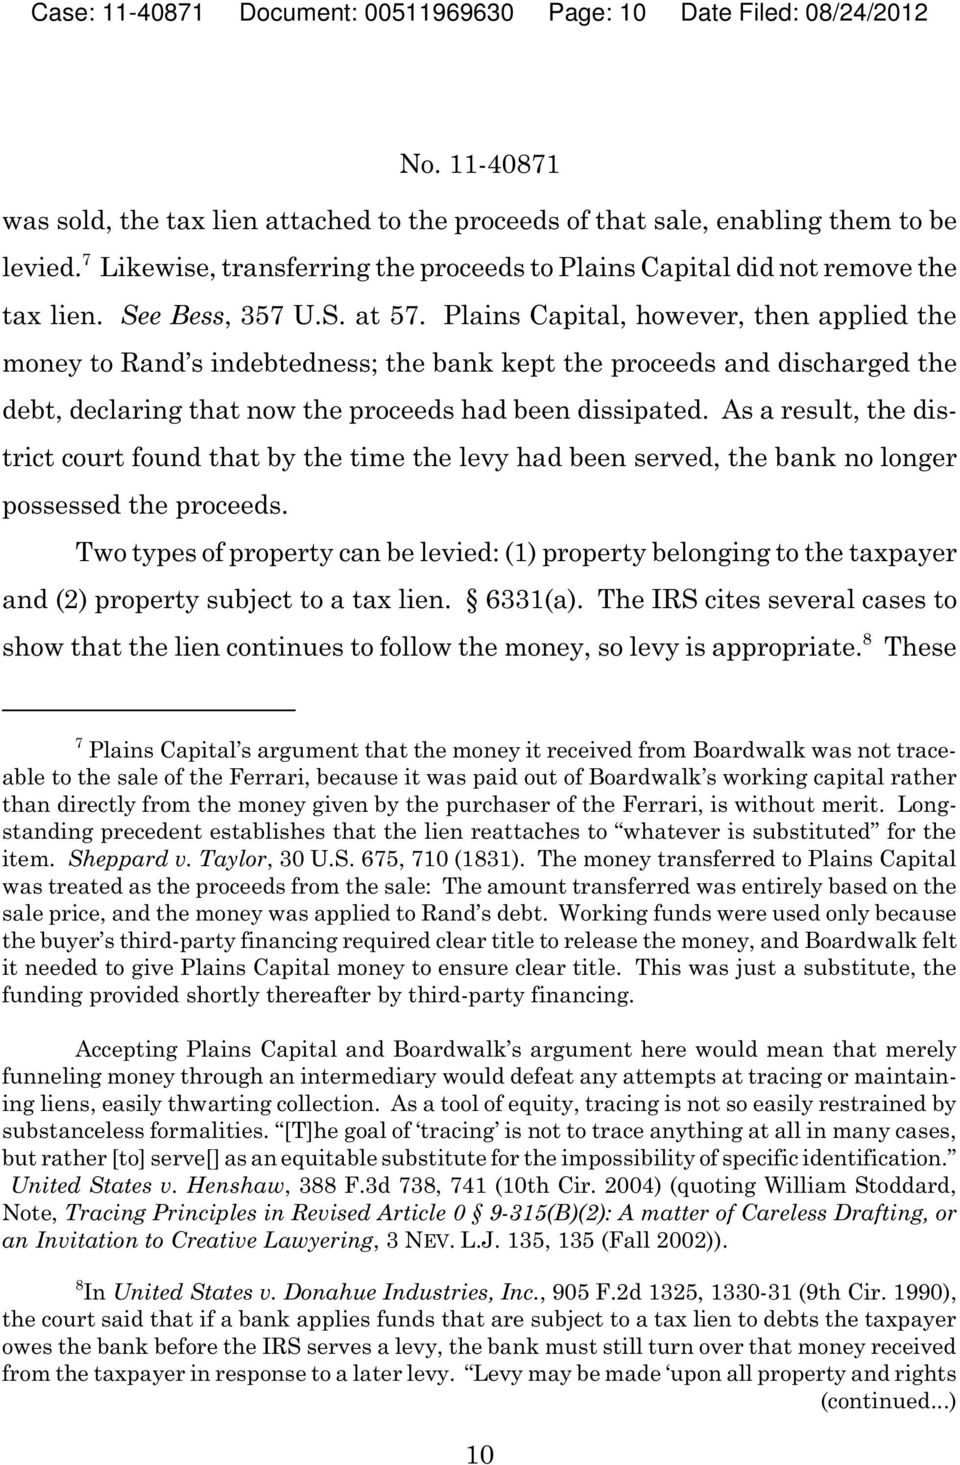 Plains Capital, however, then applied the money to Rand s indebtedness; the bank kept the proceeds and discharged the debt, declaring that now the proceeds had been dissipated.